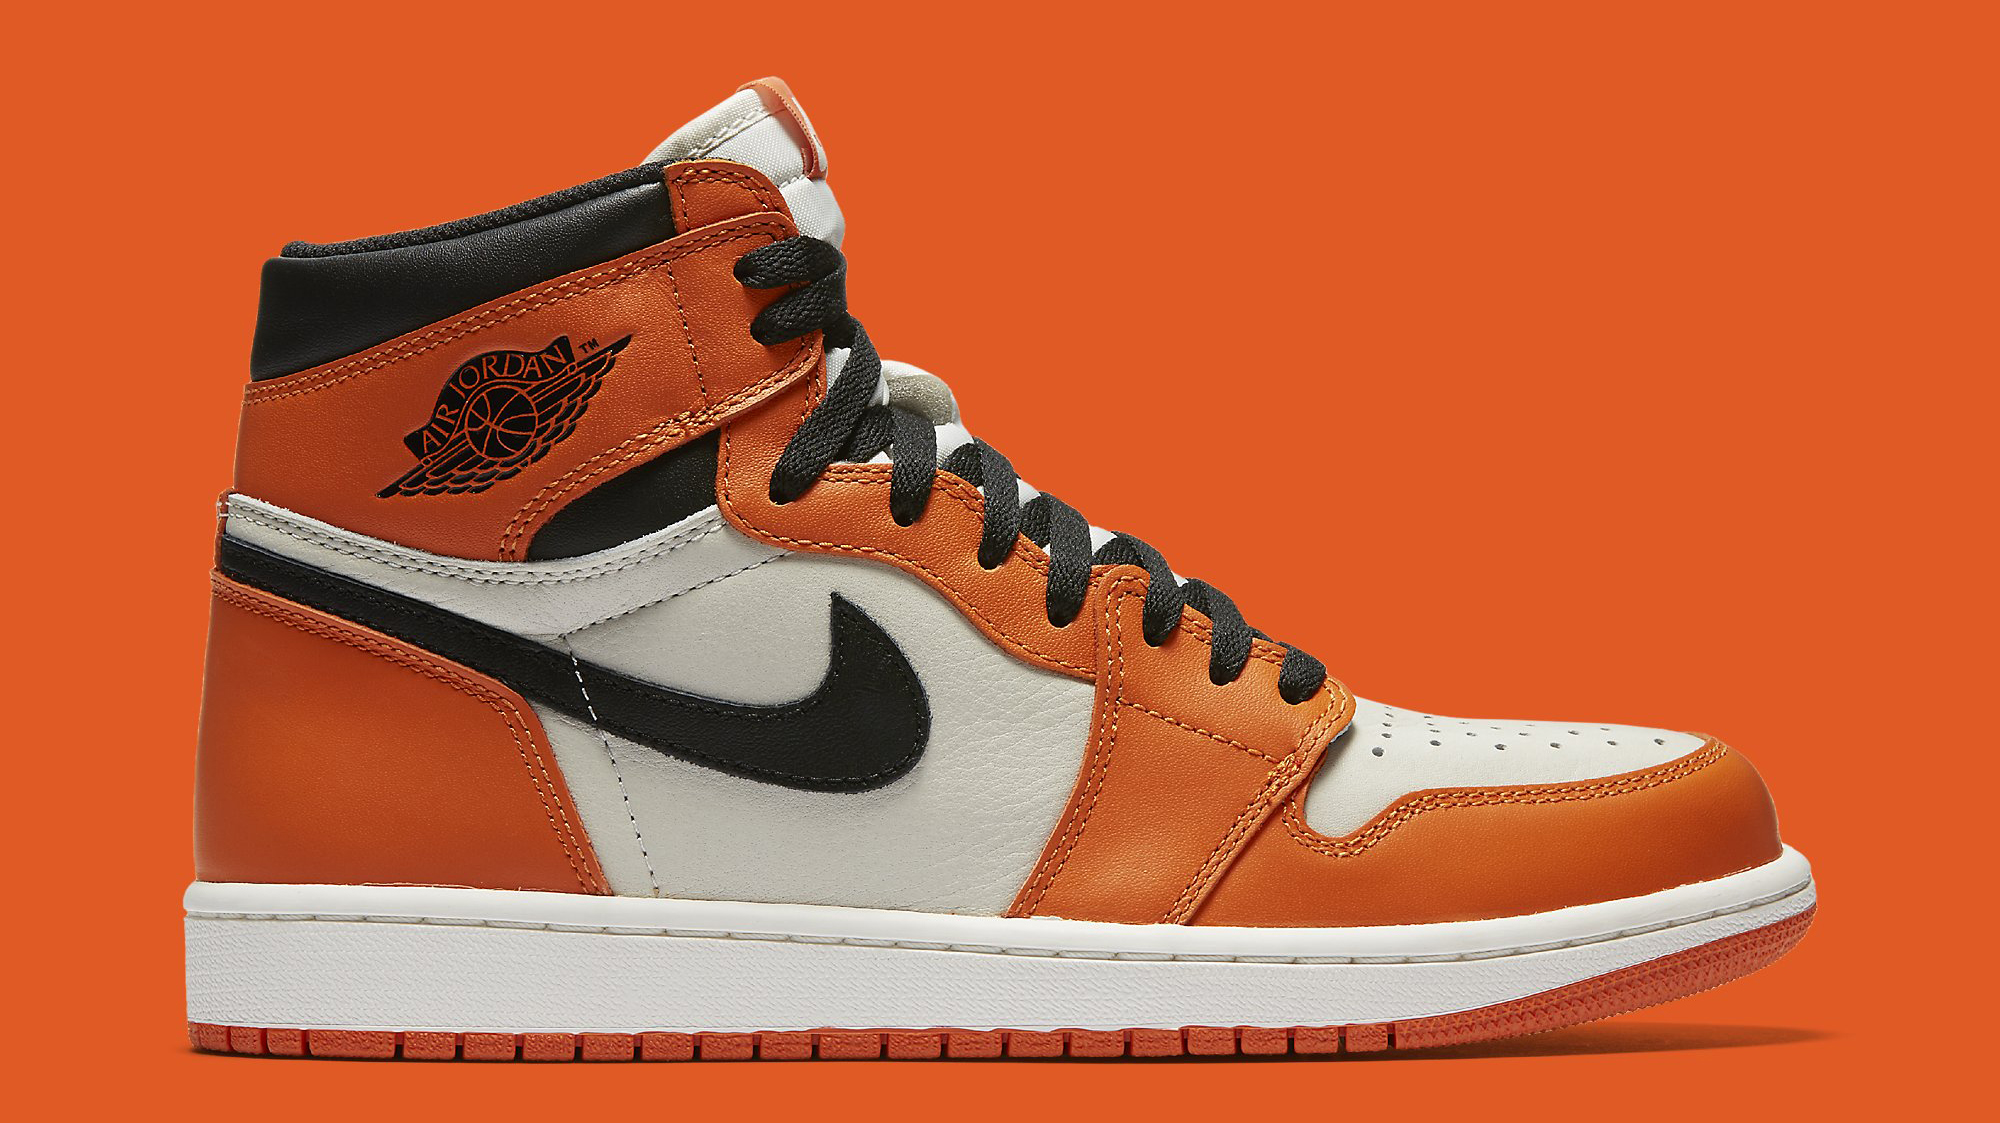 premium selection 3de14 3b0fa Air Jordan 1 Shattered Backboard Away 555088-113 Profile